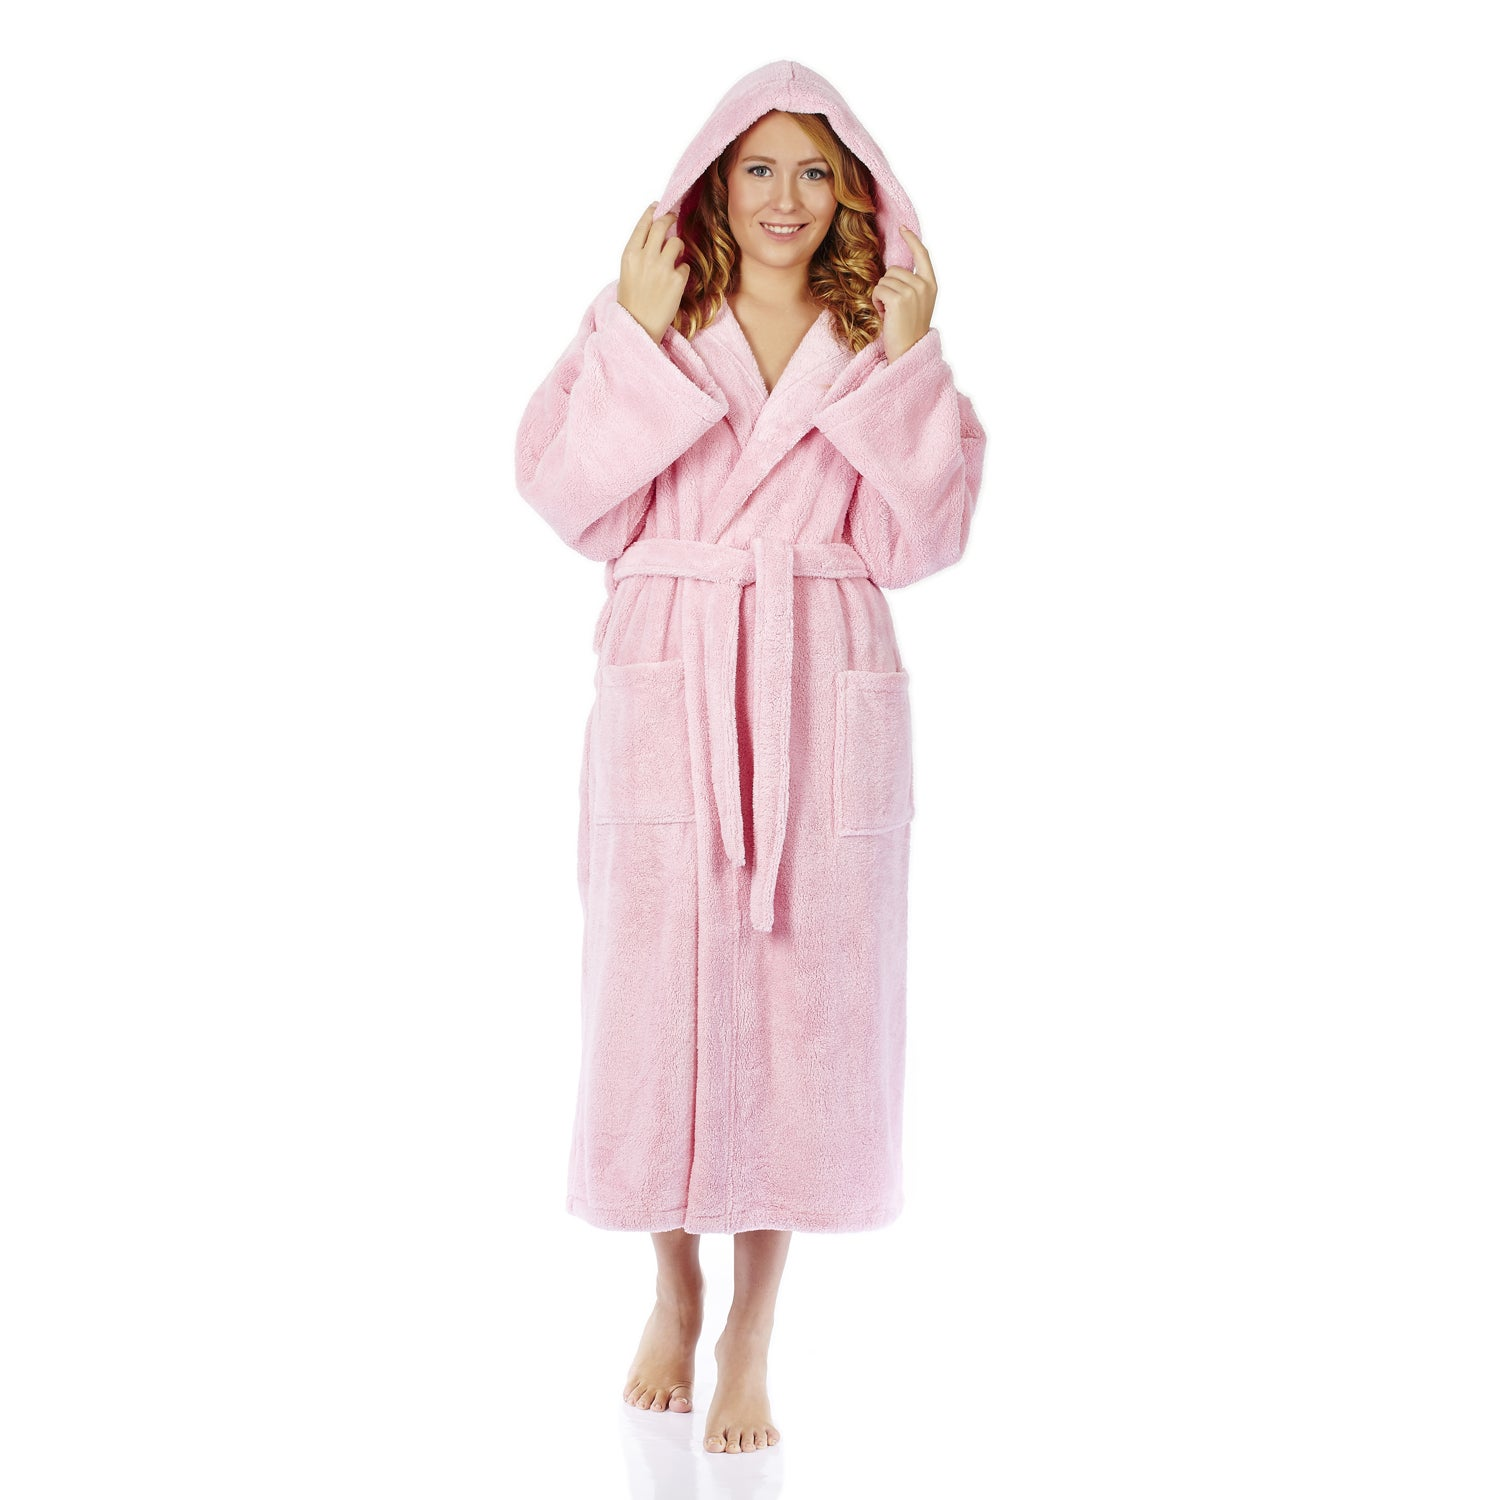 ed06c39151 Shop Women s Hooded Fleece Bathrobe Turkish Soft Plush Robe - Free Shipping  On Orders Over  45 - Overstock - 14172940